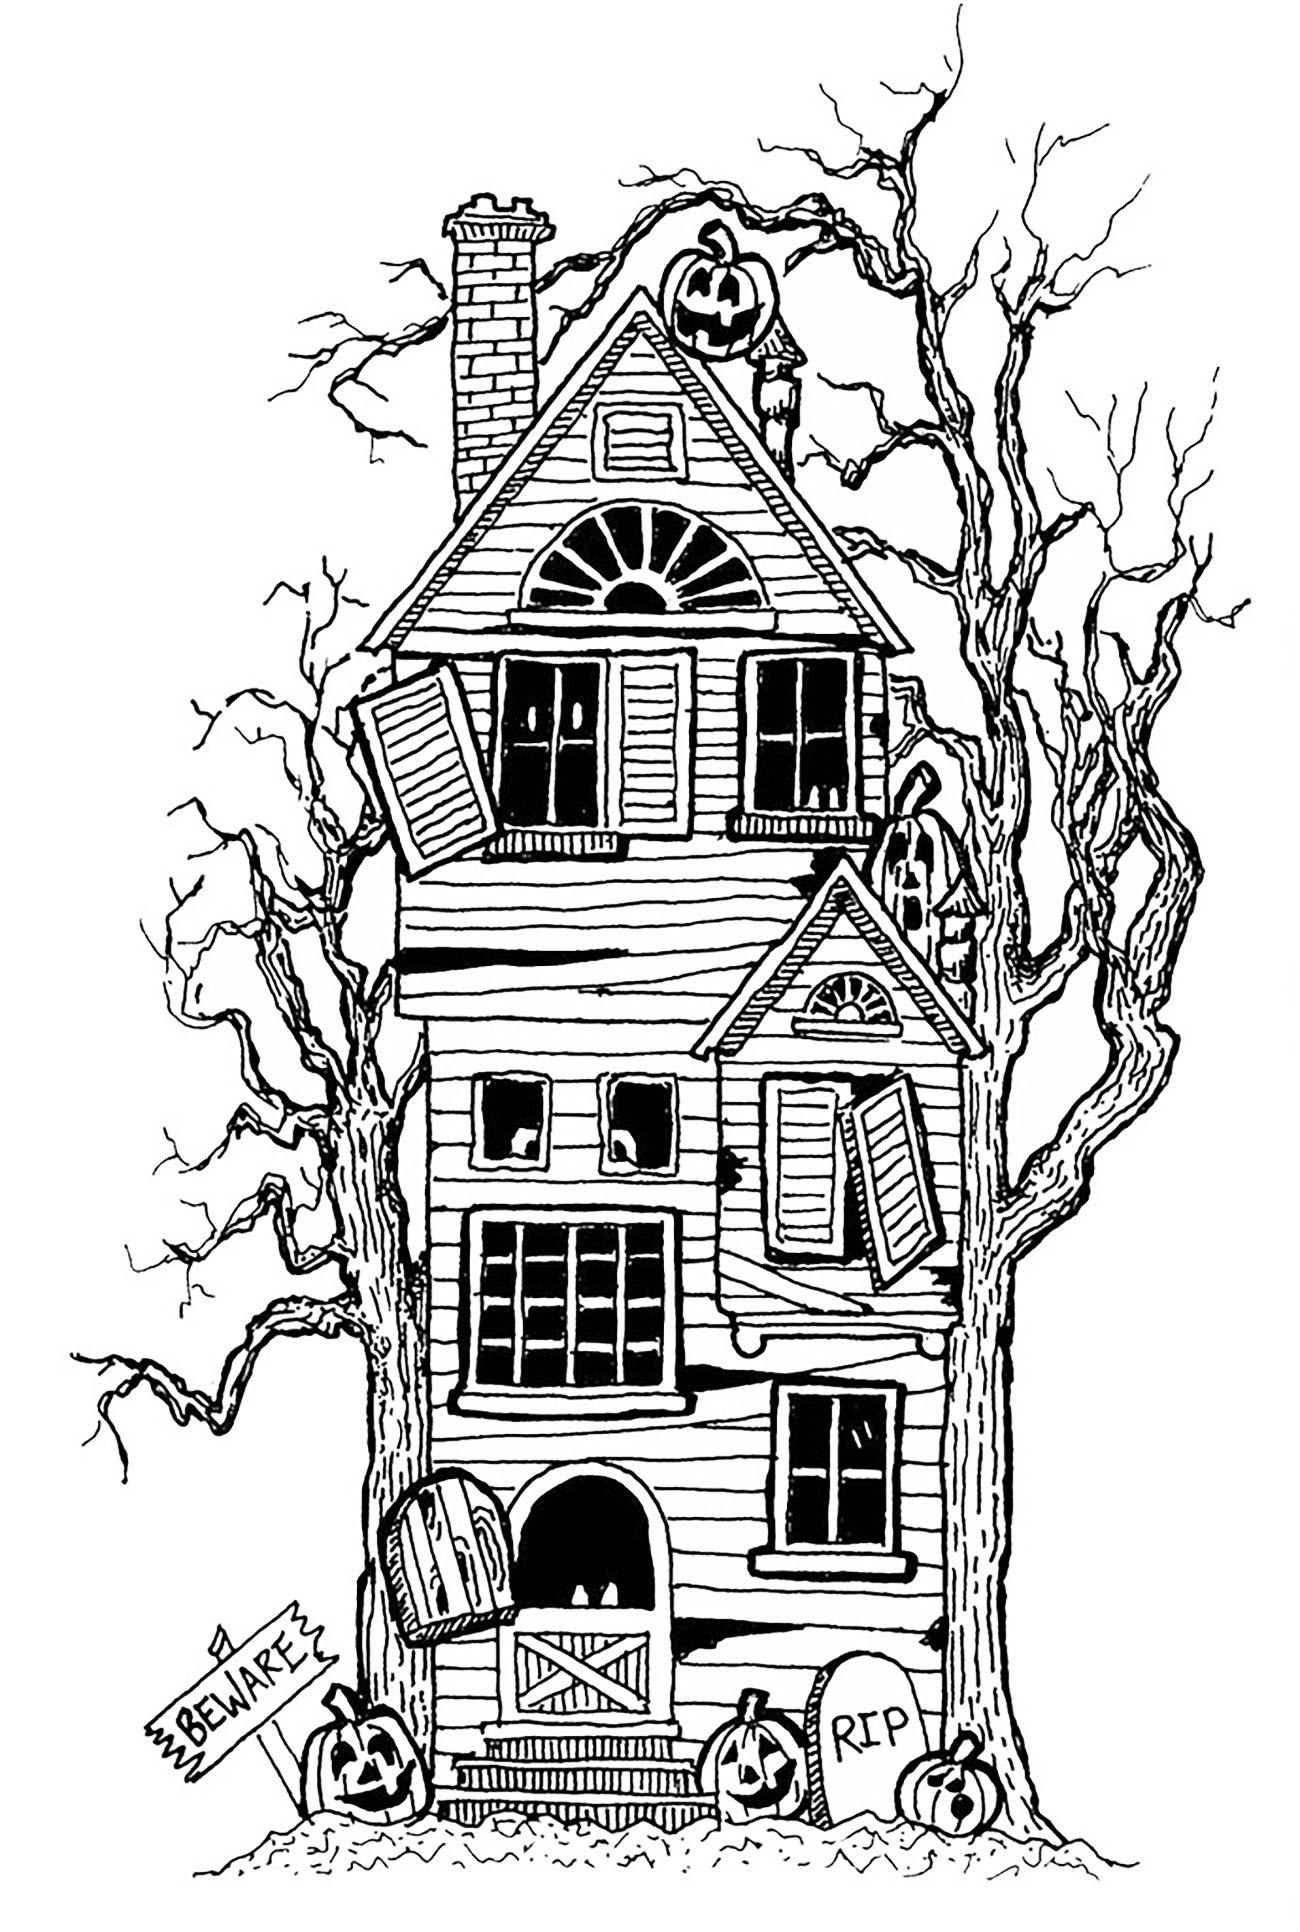 Best ideas about House Coloring Pages For Adults . Save or Pin Halloween big haunted house Halloween Adult Coloring Pages Now.